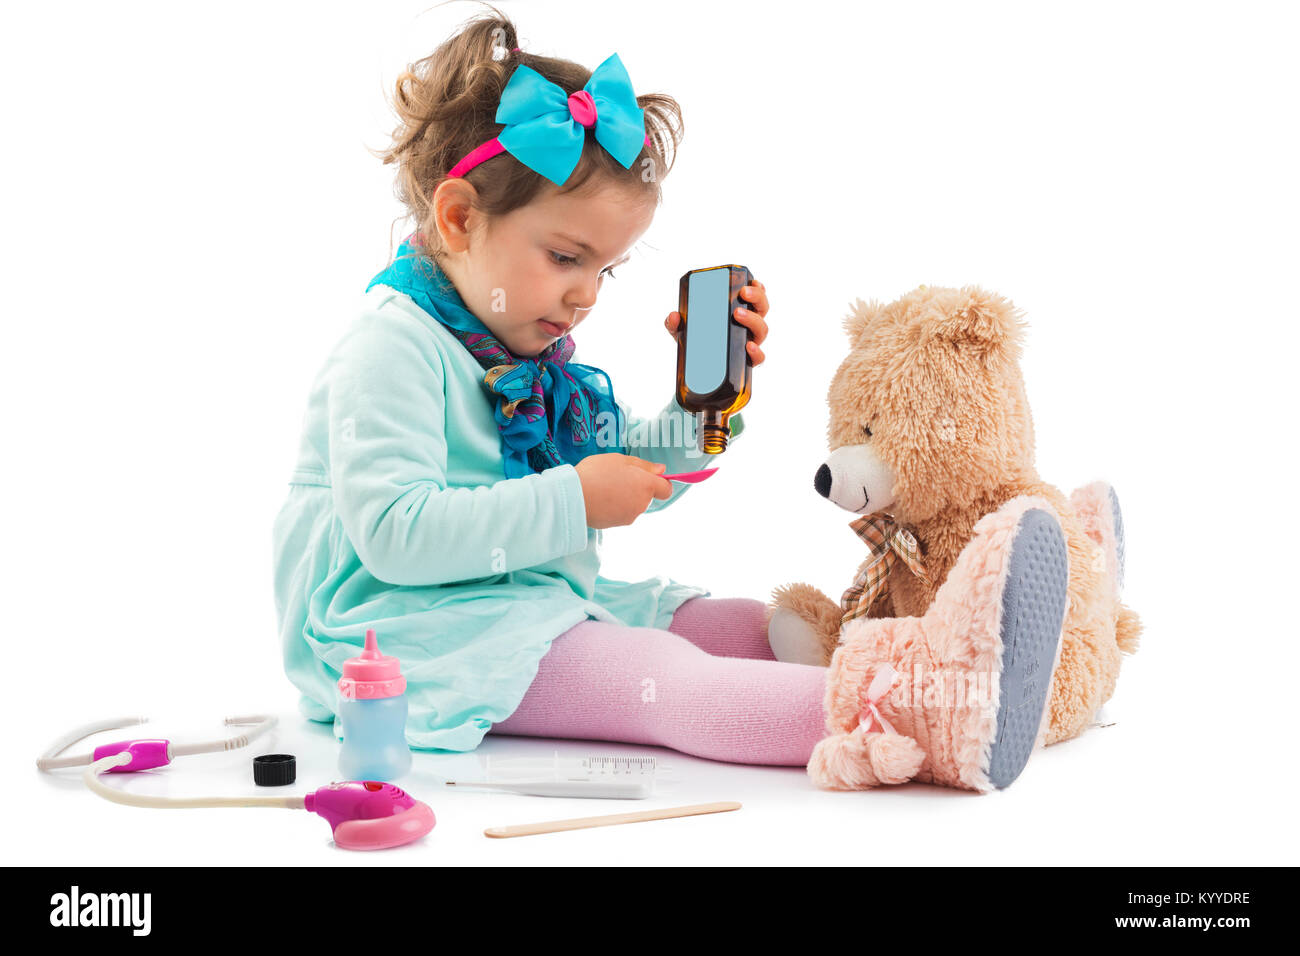 Cute kid girl playing doctor with plush toy at home. - Stock Image